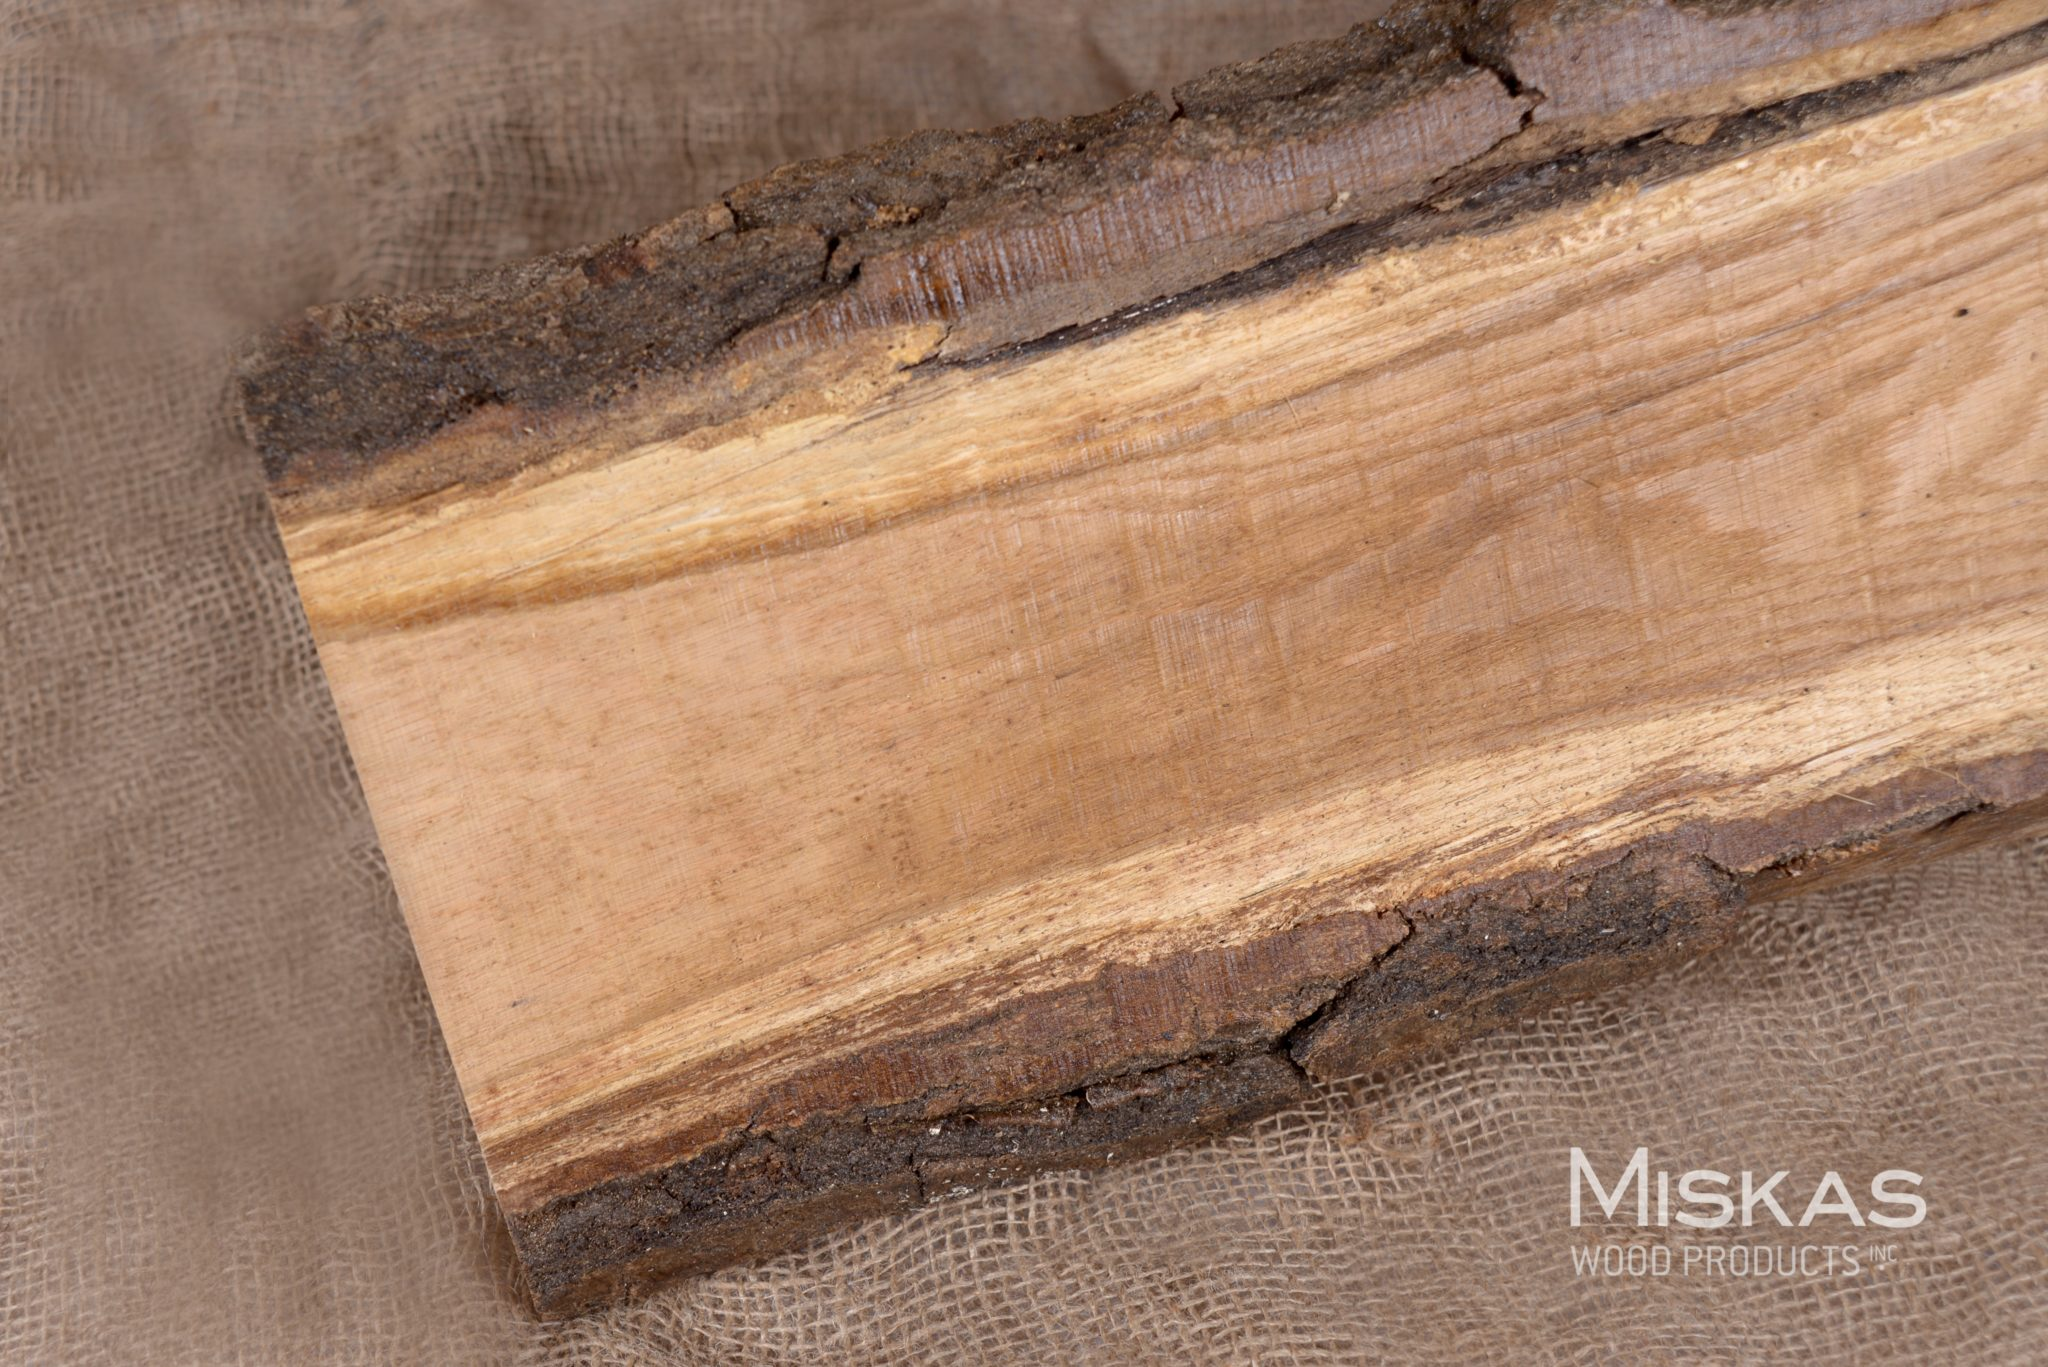 Red oak live edge slabs miskas wood products inc for How to finish a wood slab